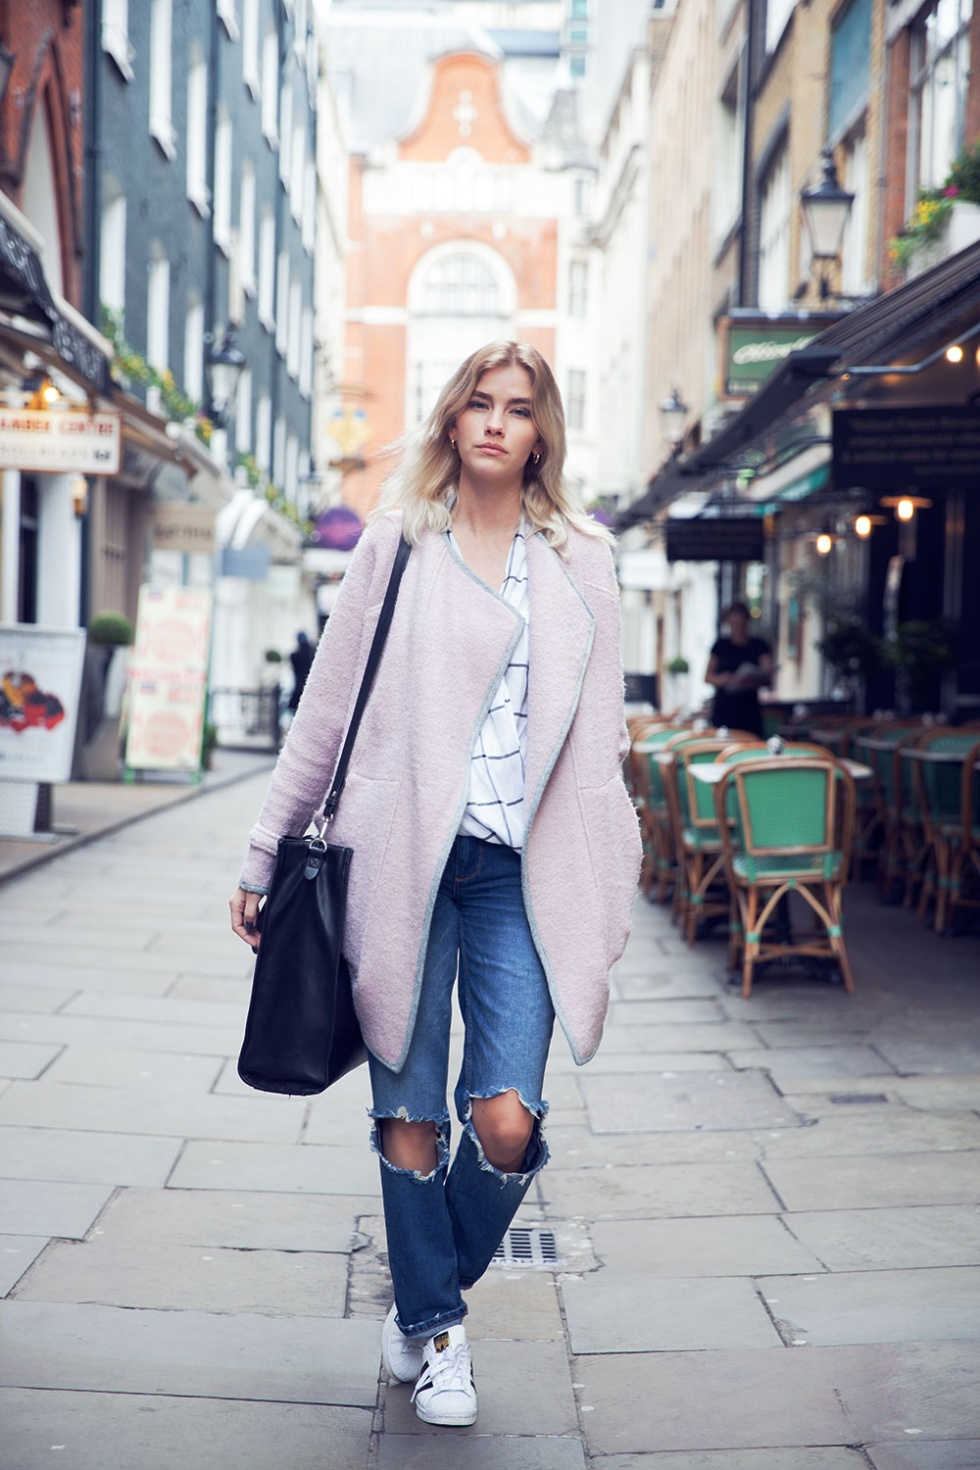 Elsa Ekman is wearing a rosy coat from River Island